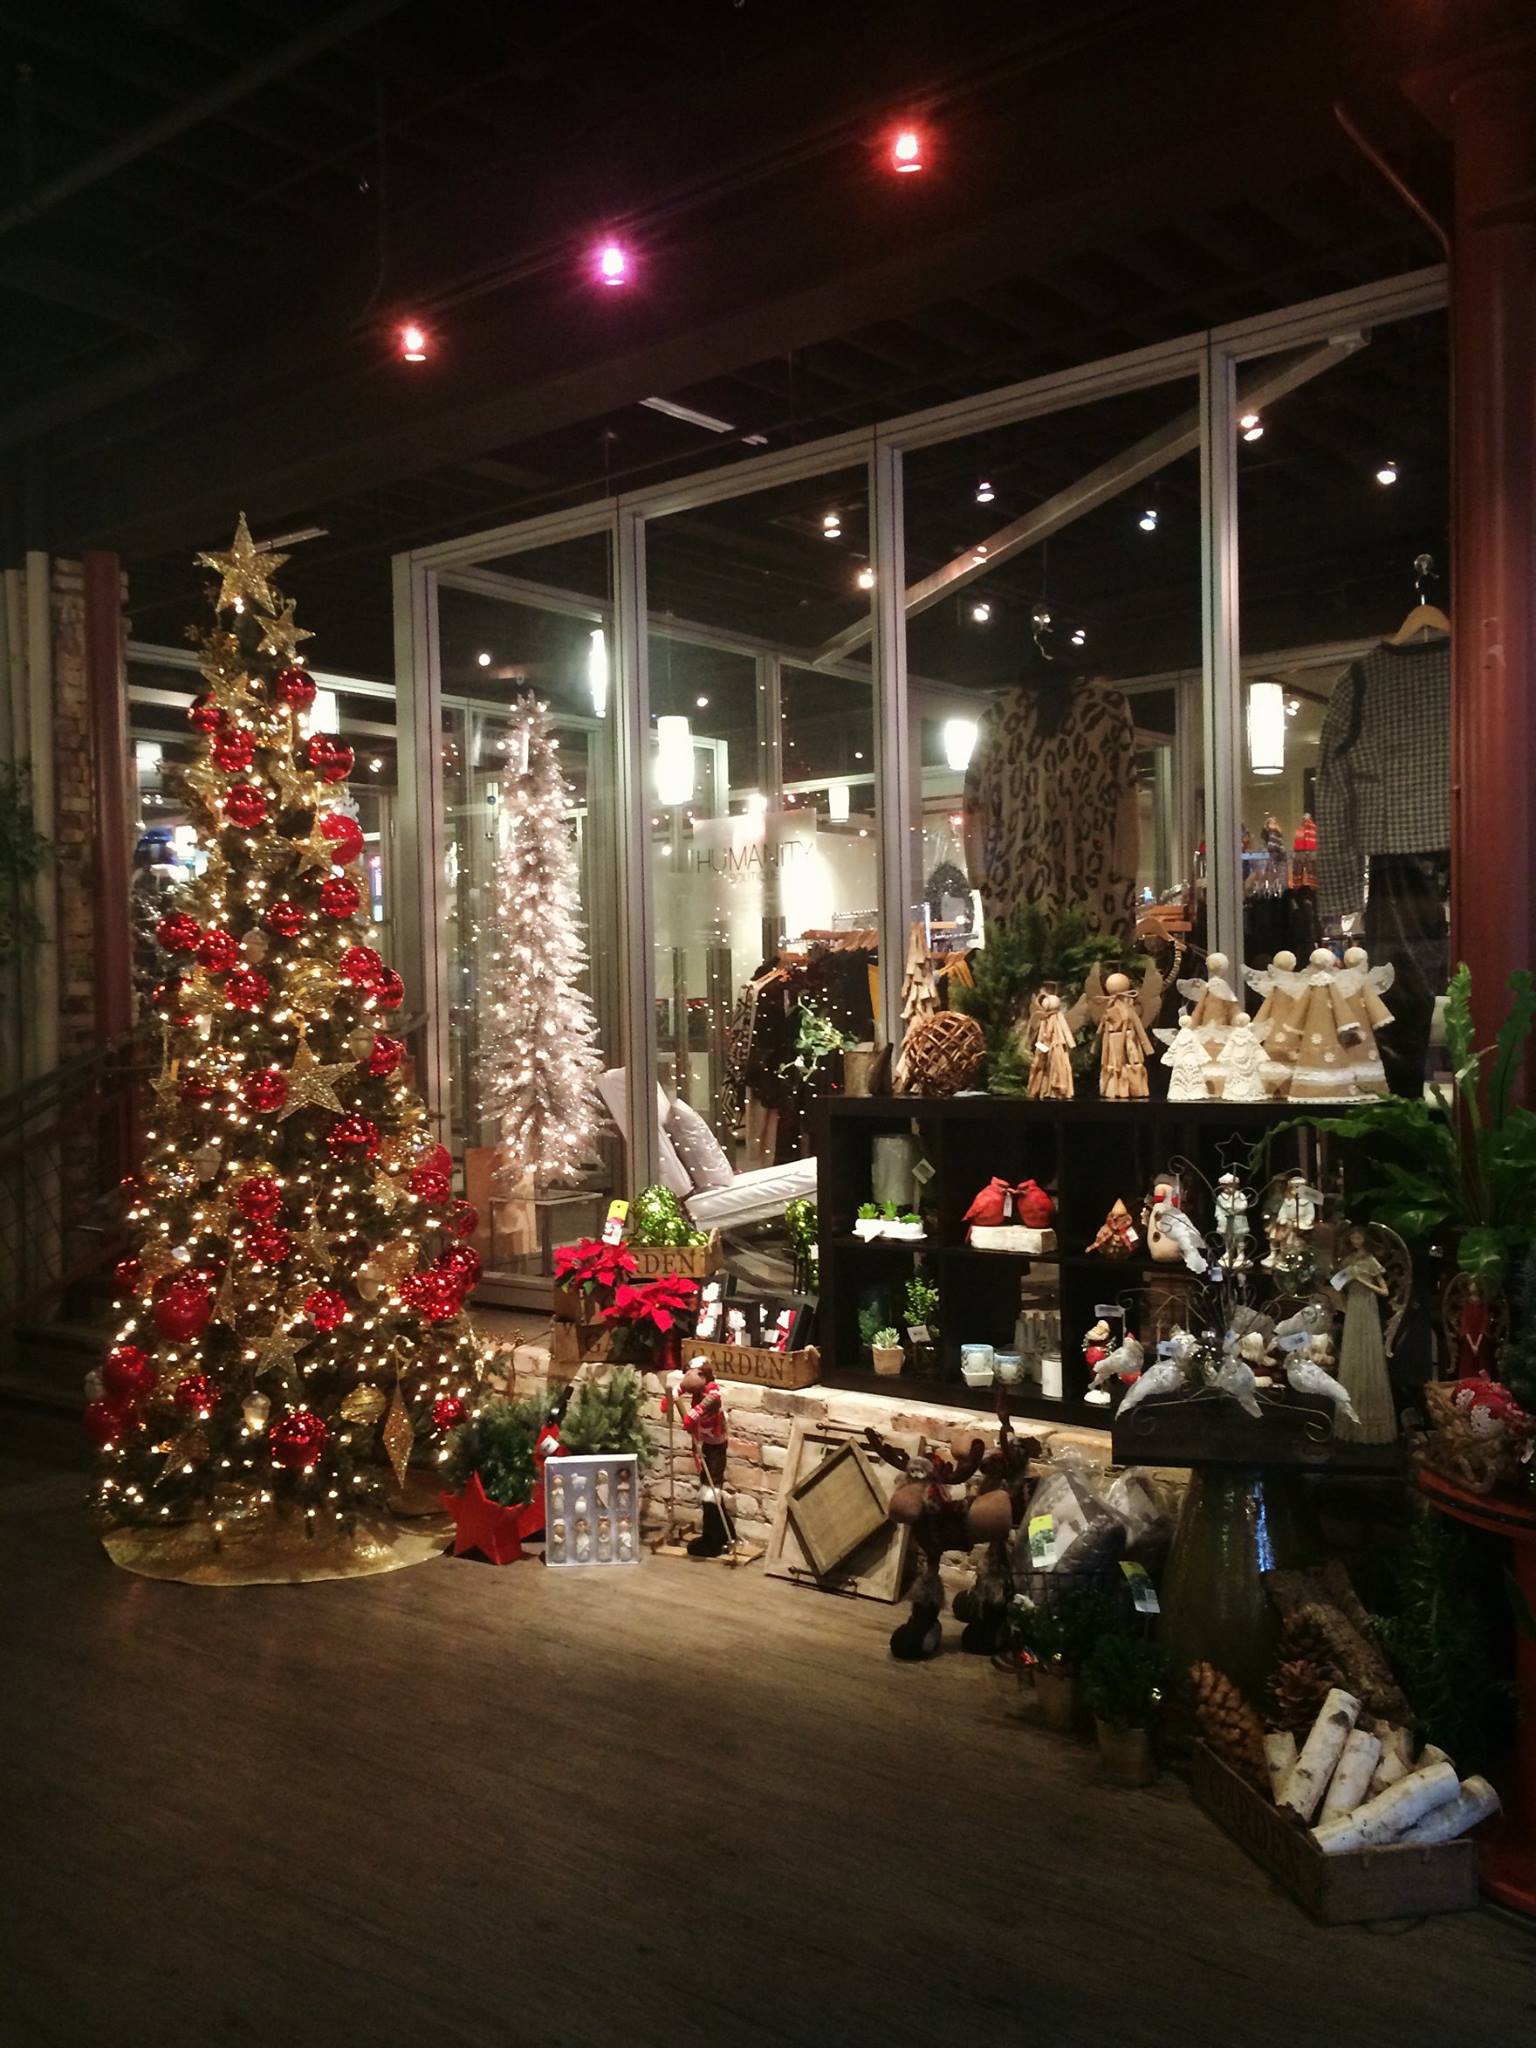 Check out MoDiv in Grand Rapids for great holiday gifts for everyone on your list.